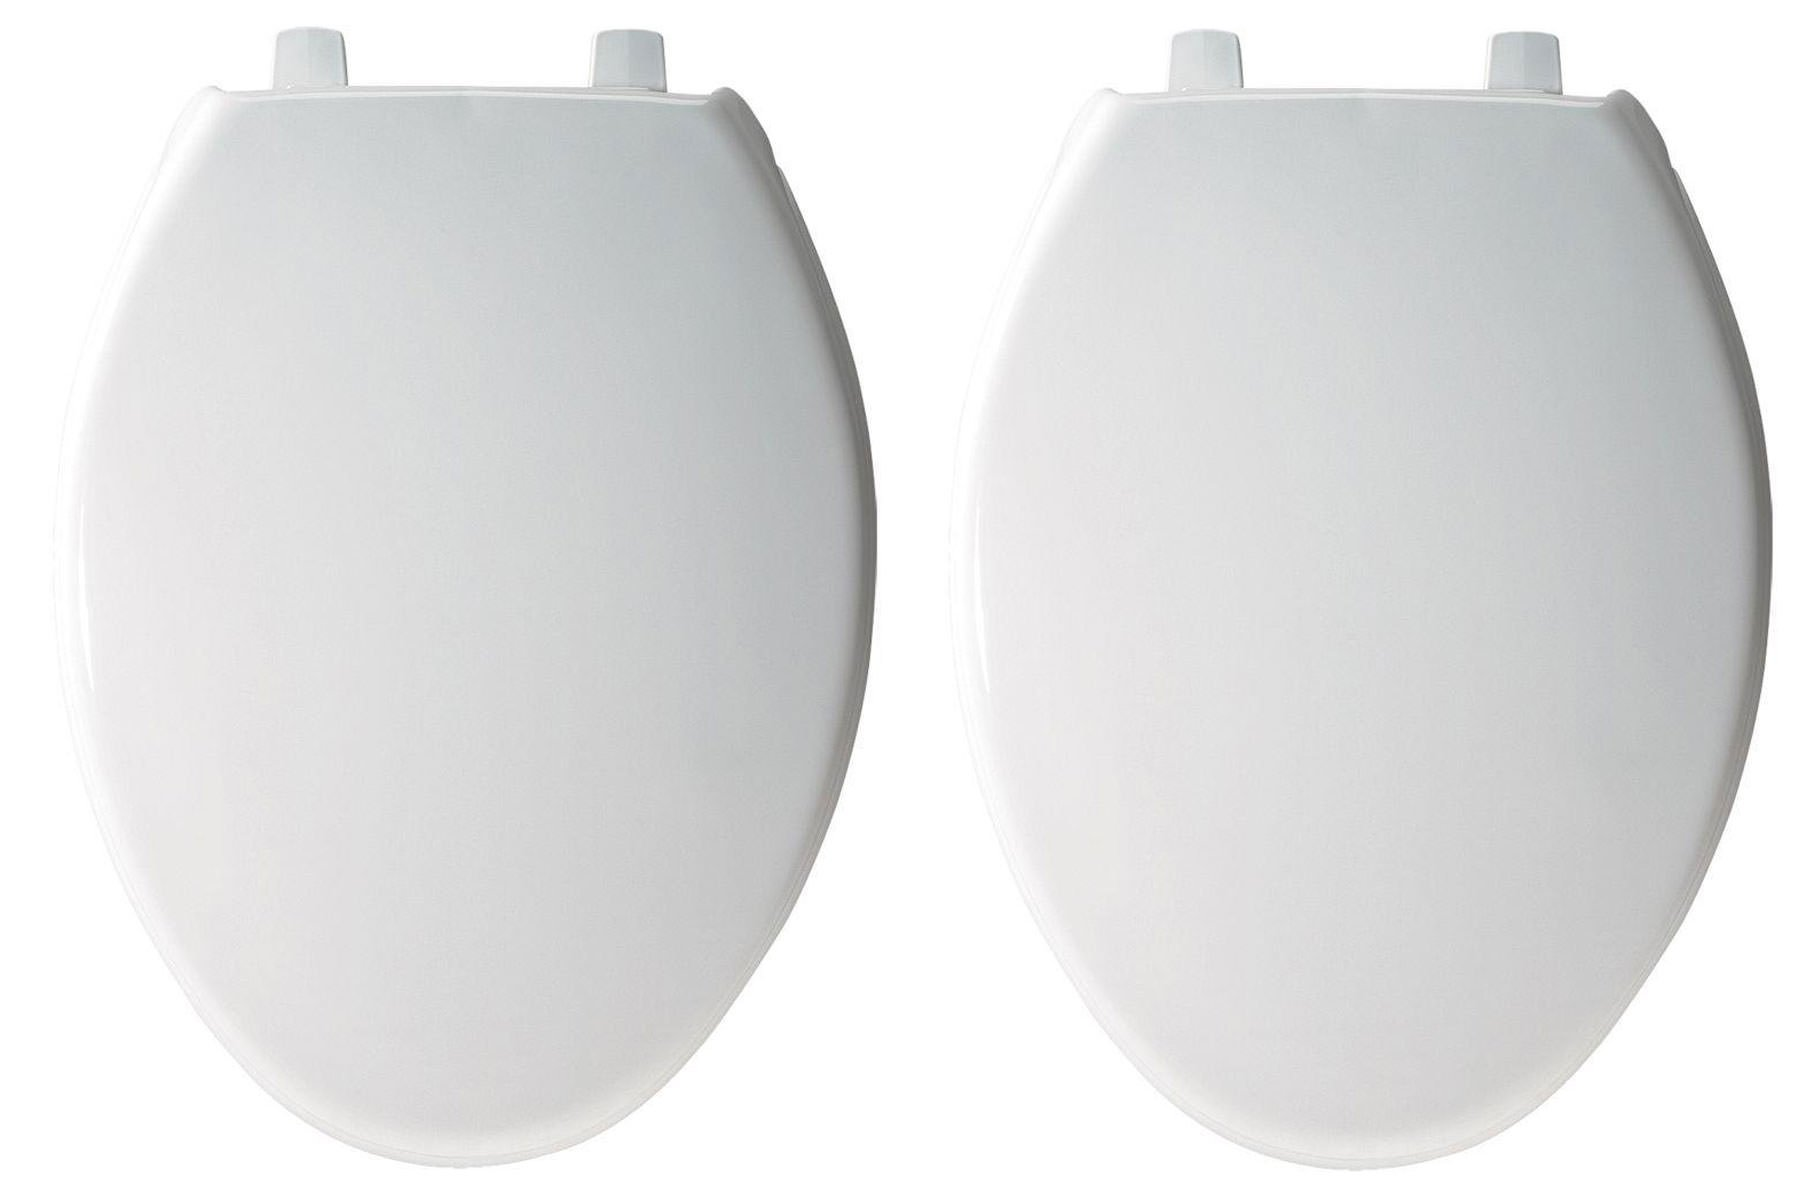 Bemis 7800TDG000 Plastic Toilet Seat, Elongated, White (2 Pack) by Bemis